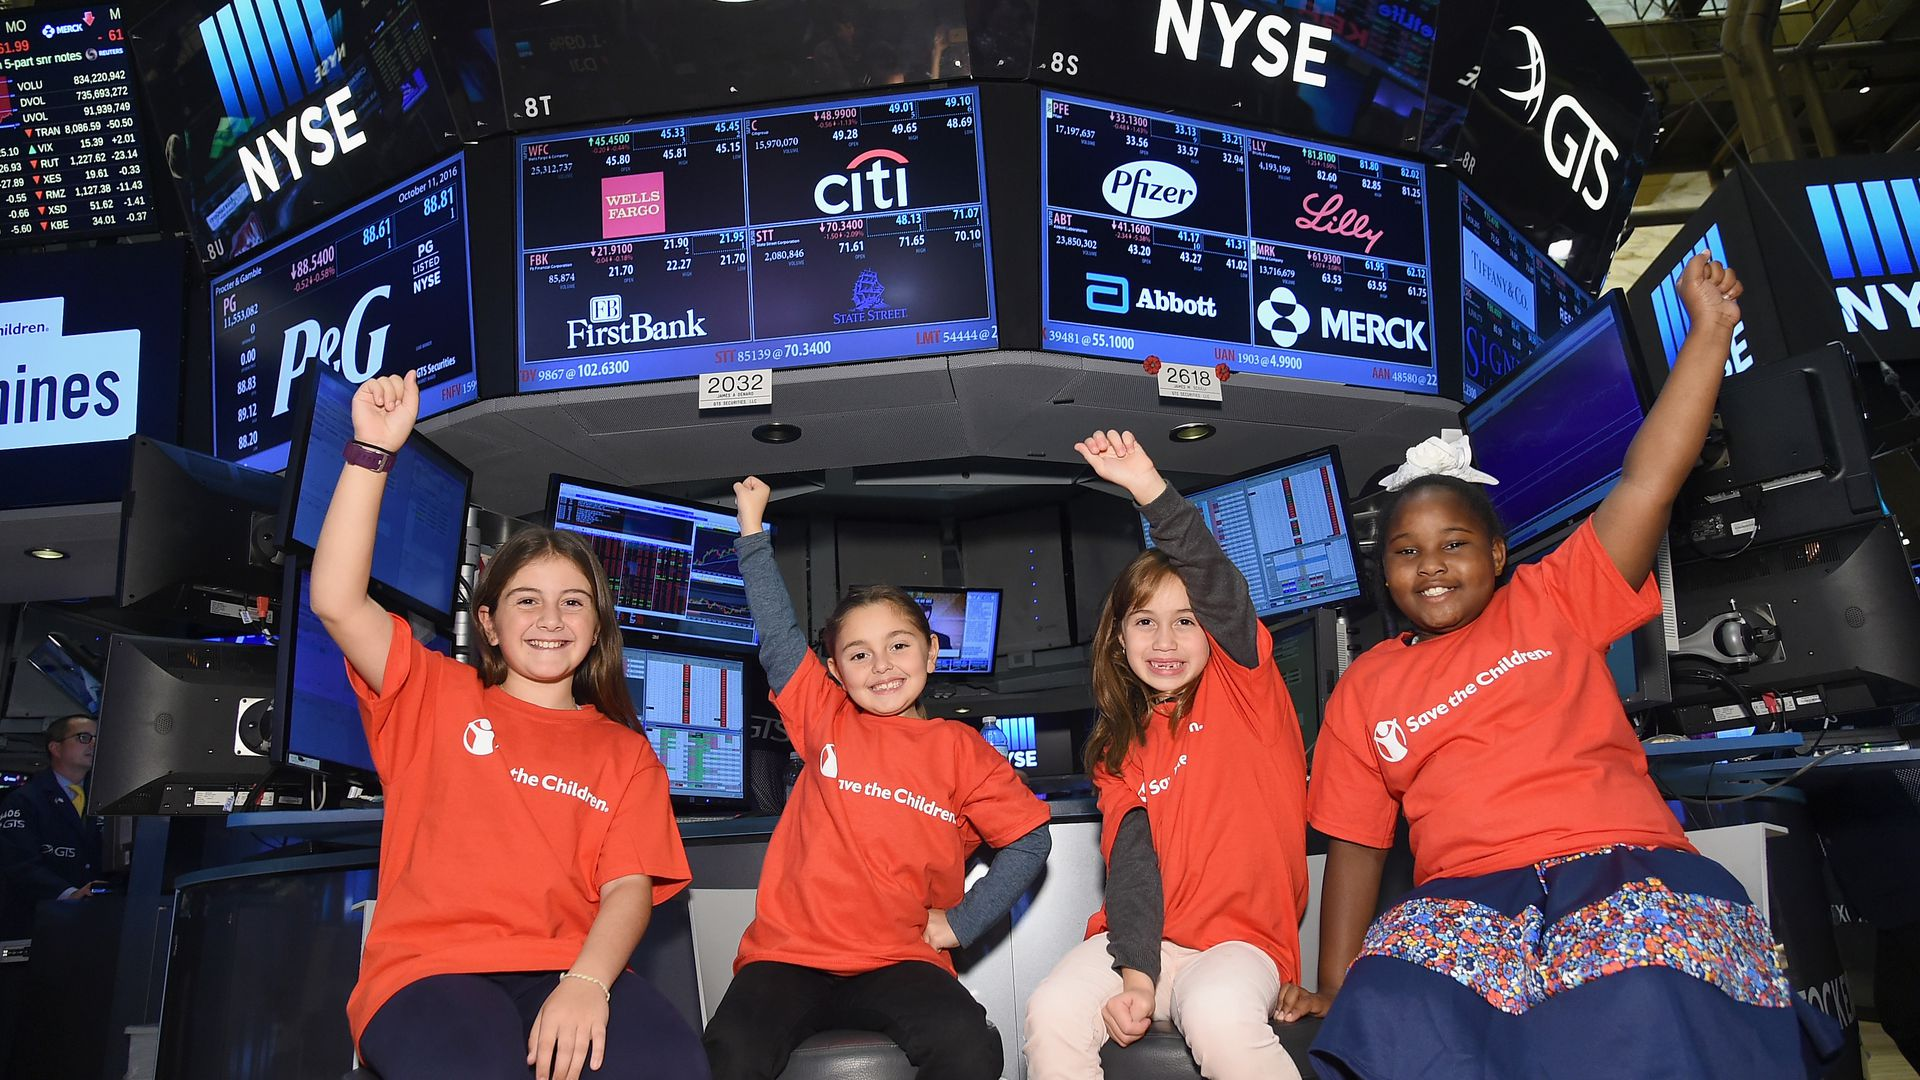 Save the Children girls at the stock market